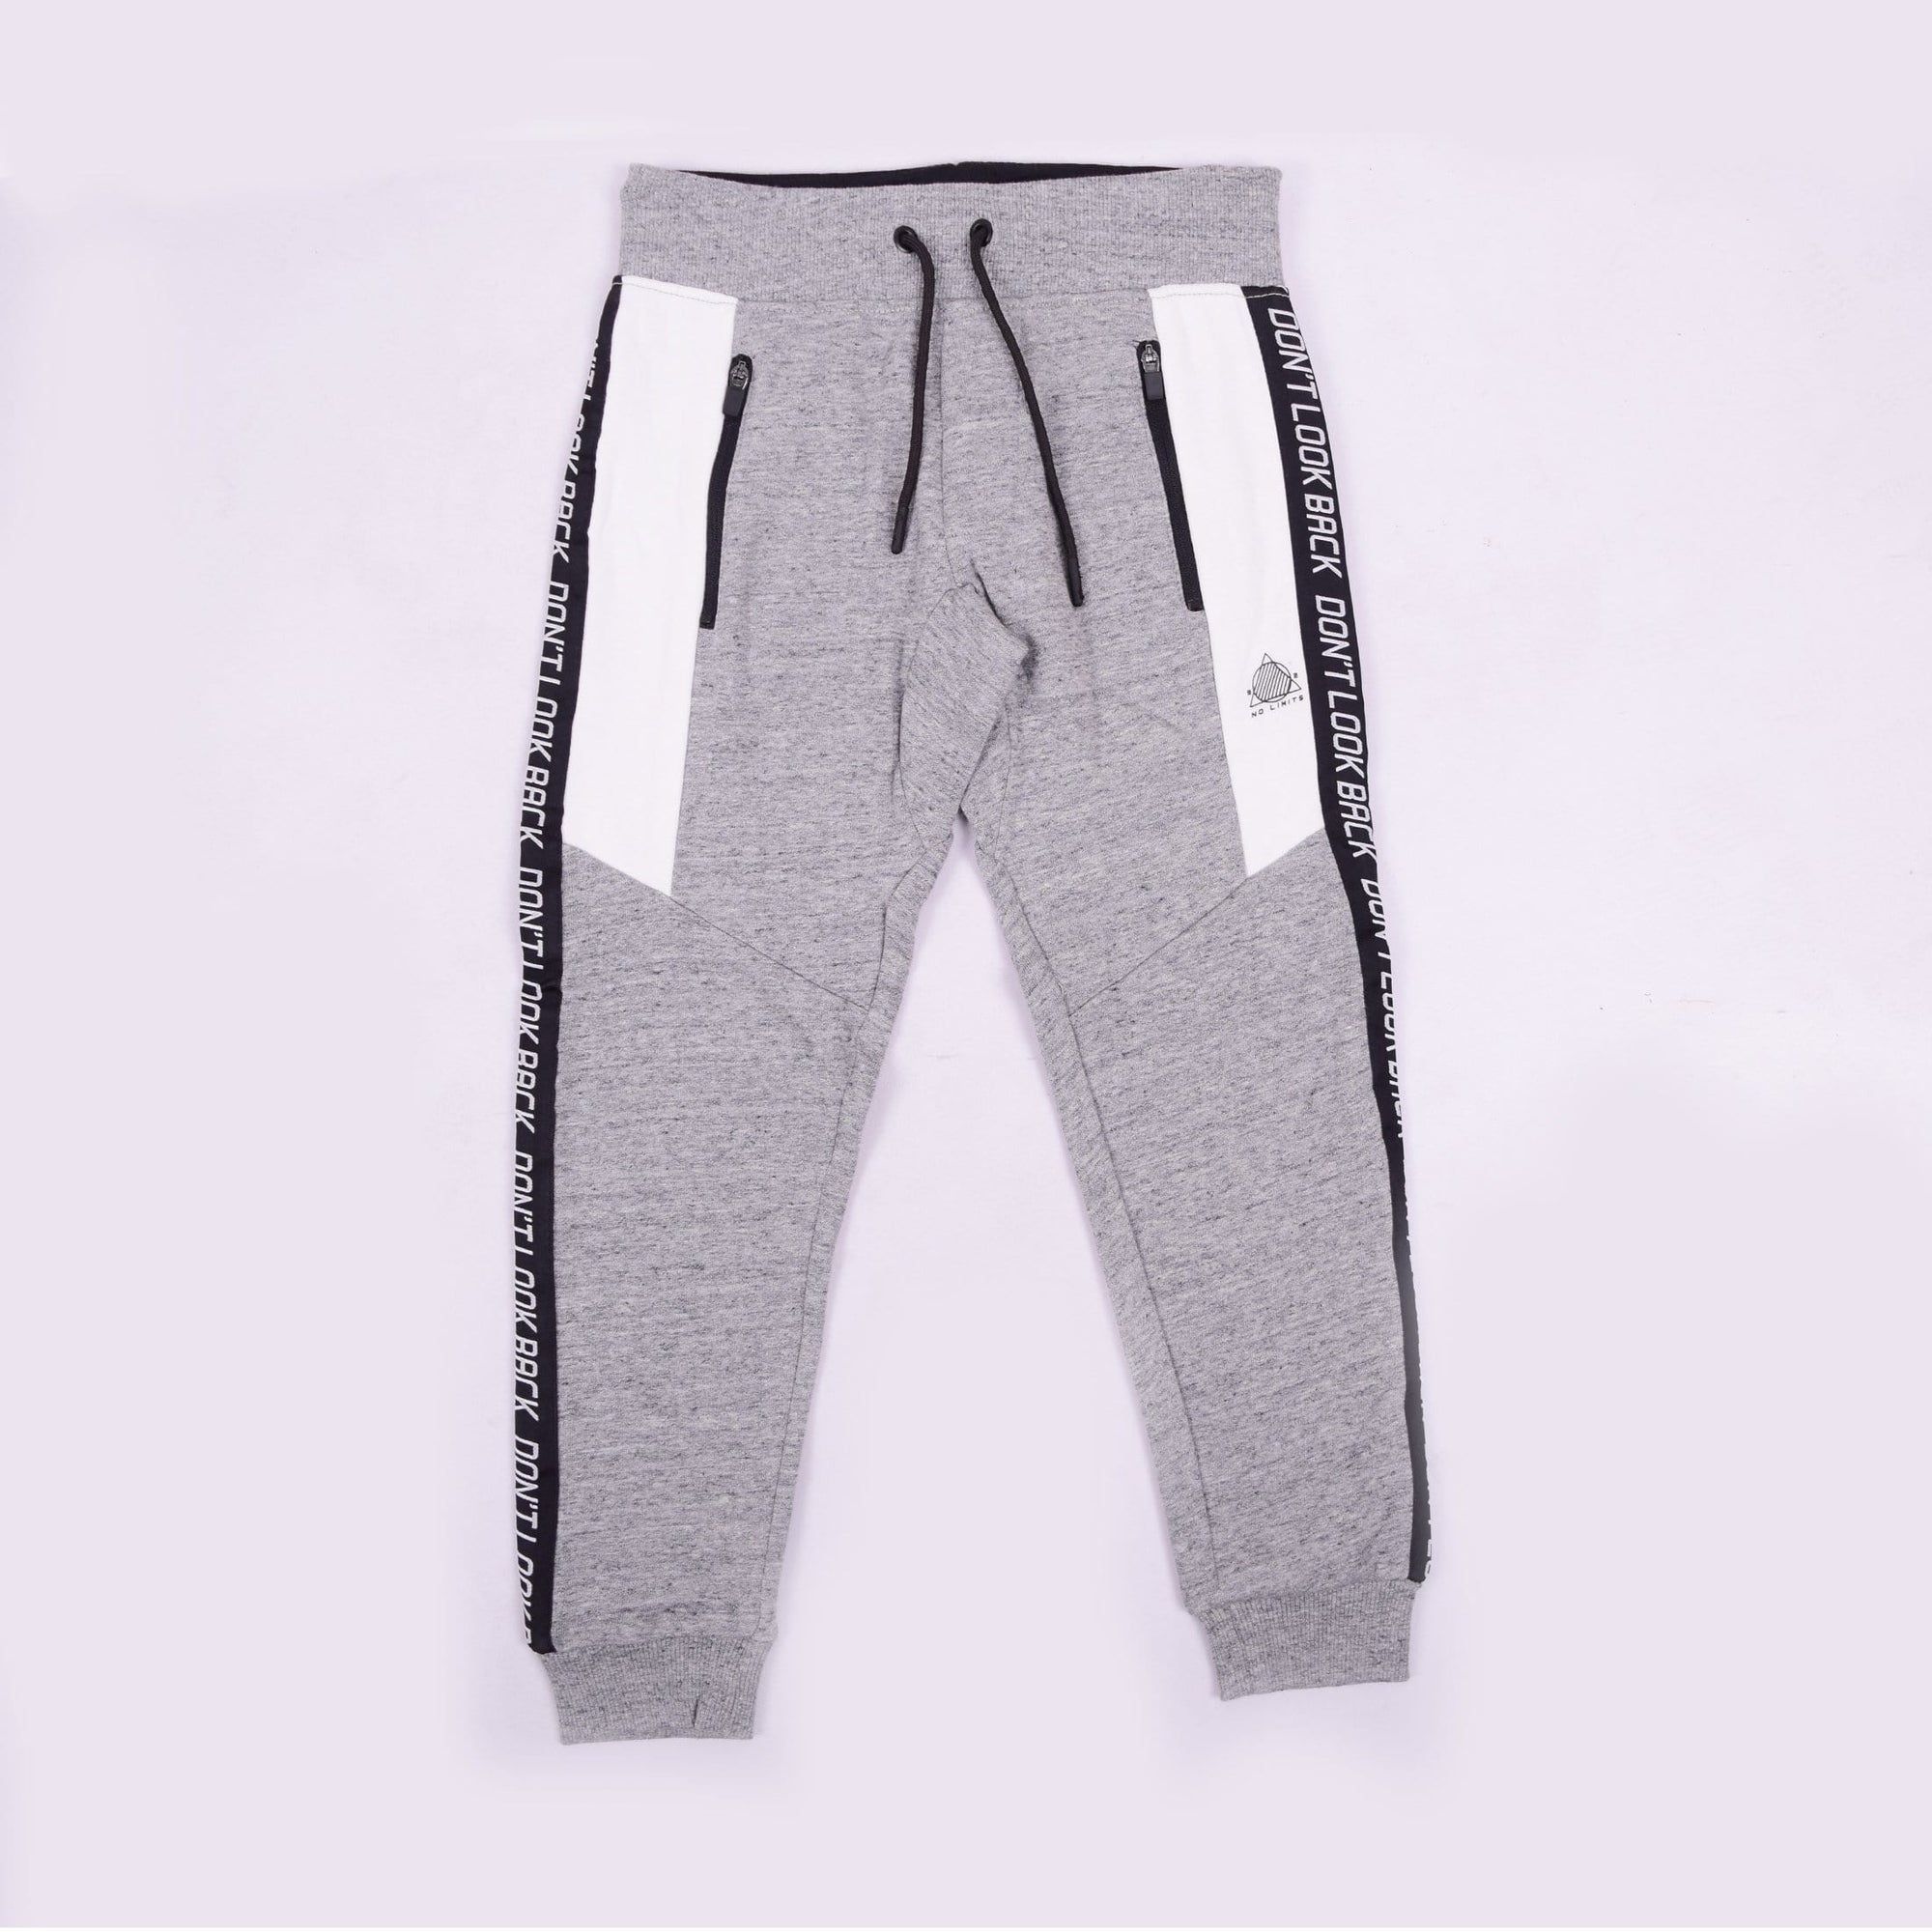 Stone Harbor Kid's Jogger Grey / 5-6 Years Boy's Stone Harbor No Limits Slim Fit Sweatpants